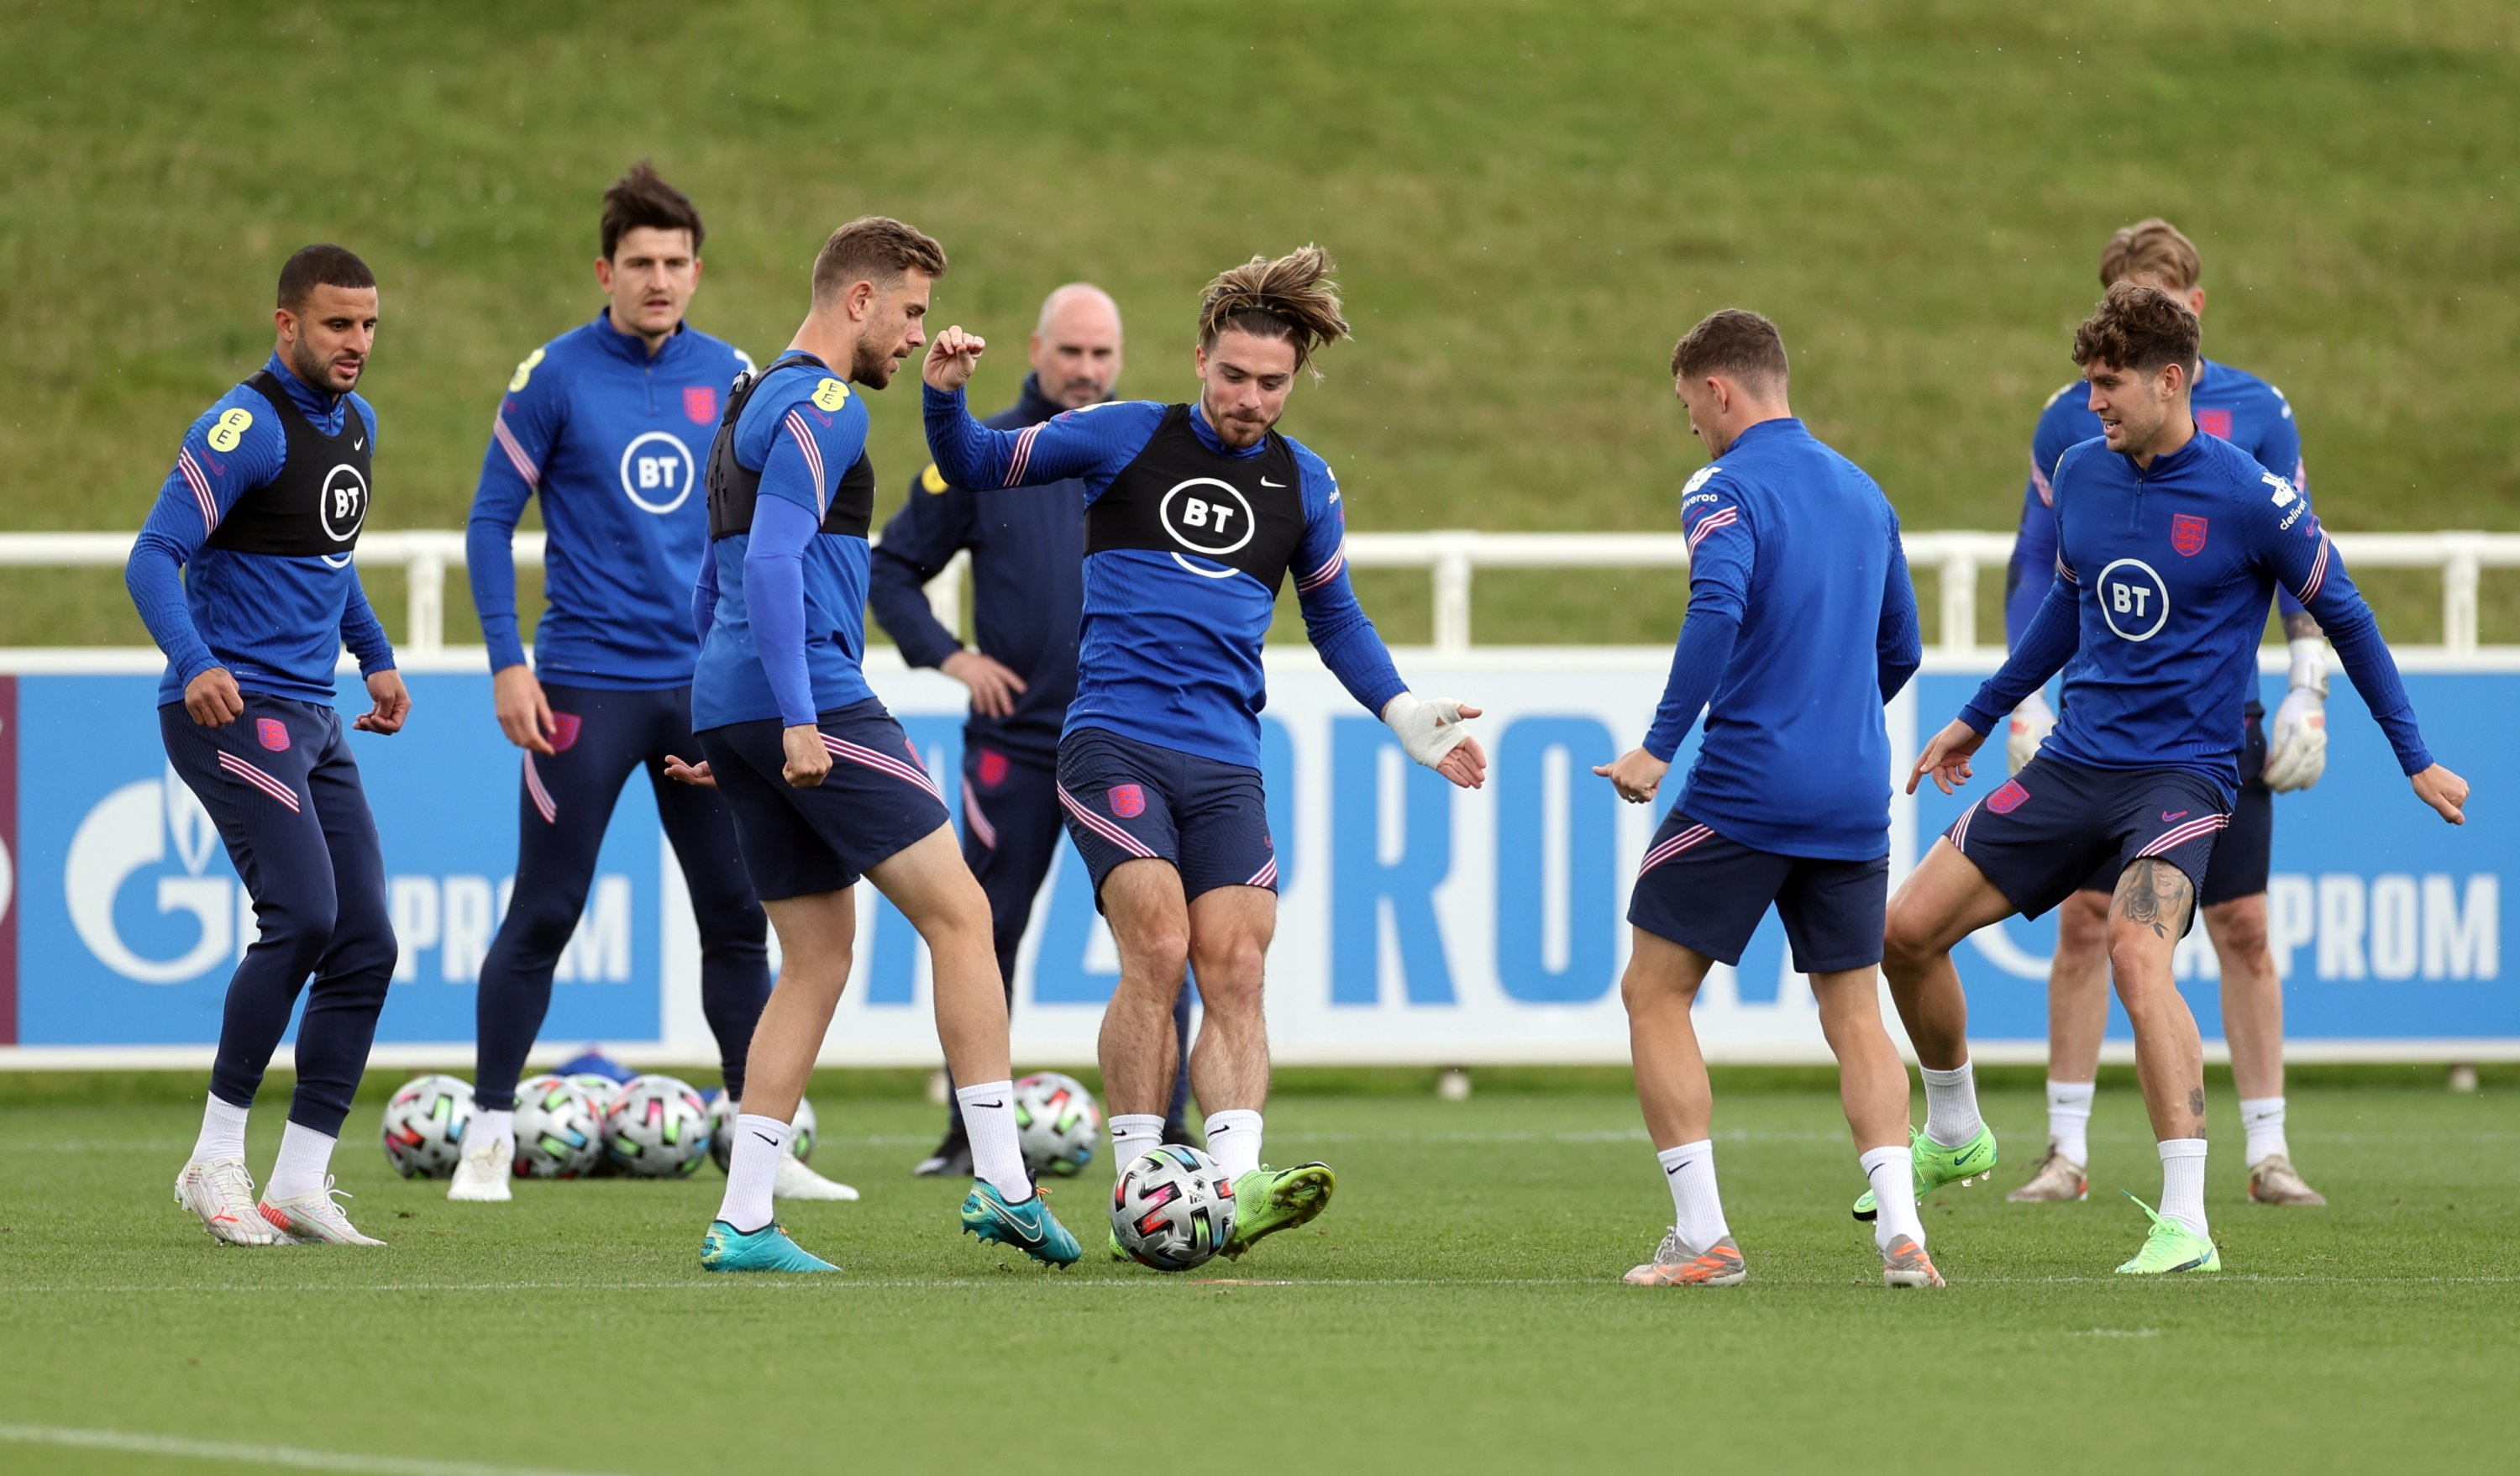 England's players attend a training session at St. George's Park, Burton upon Trent, England, July 5, 2021 (Reuters Photo)